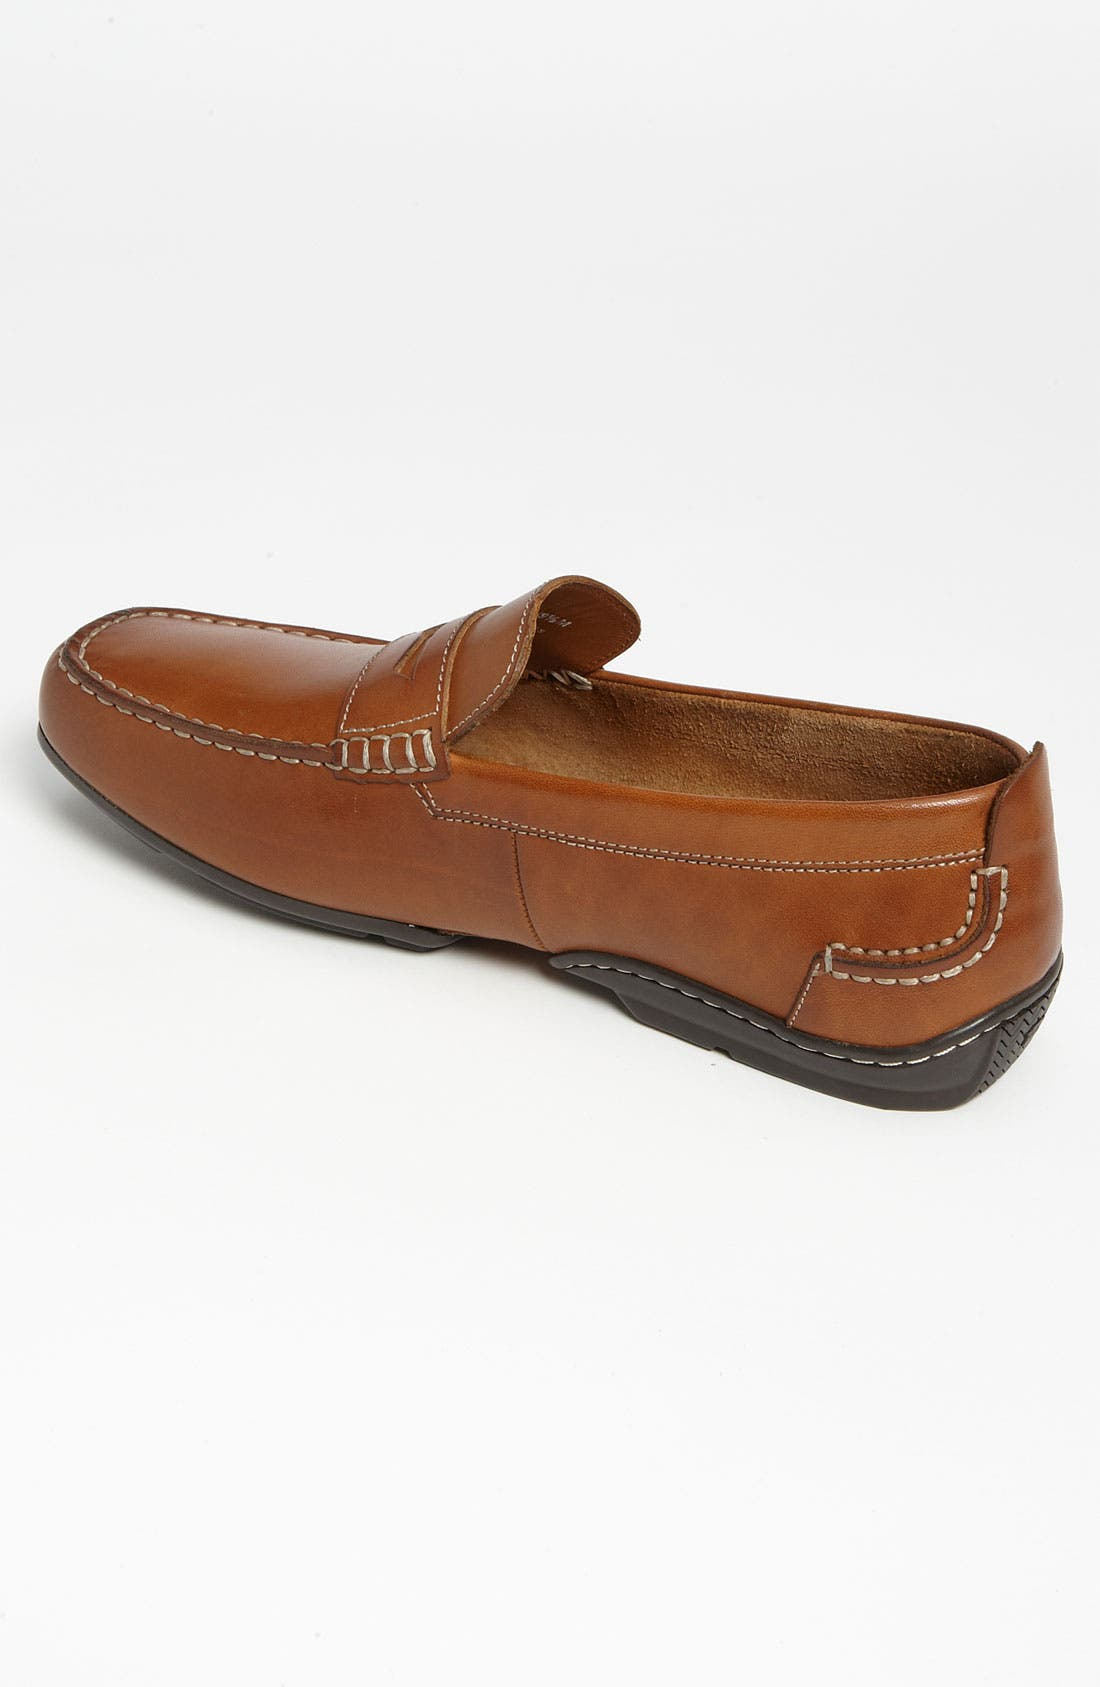 Alternate Image 2  - Florsheim 'University' Penny Loafer (Online Only)